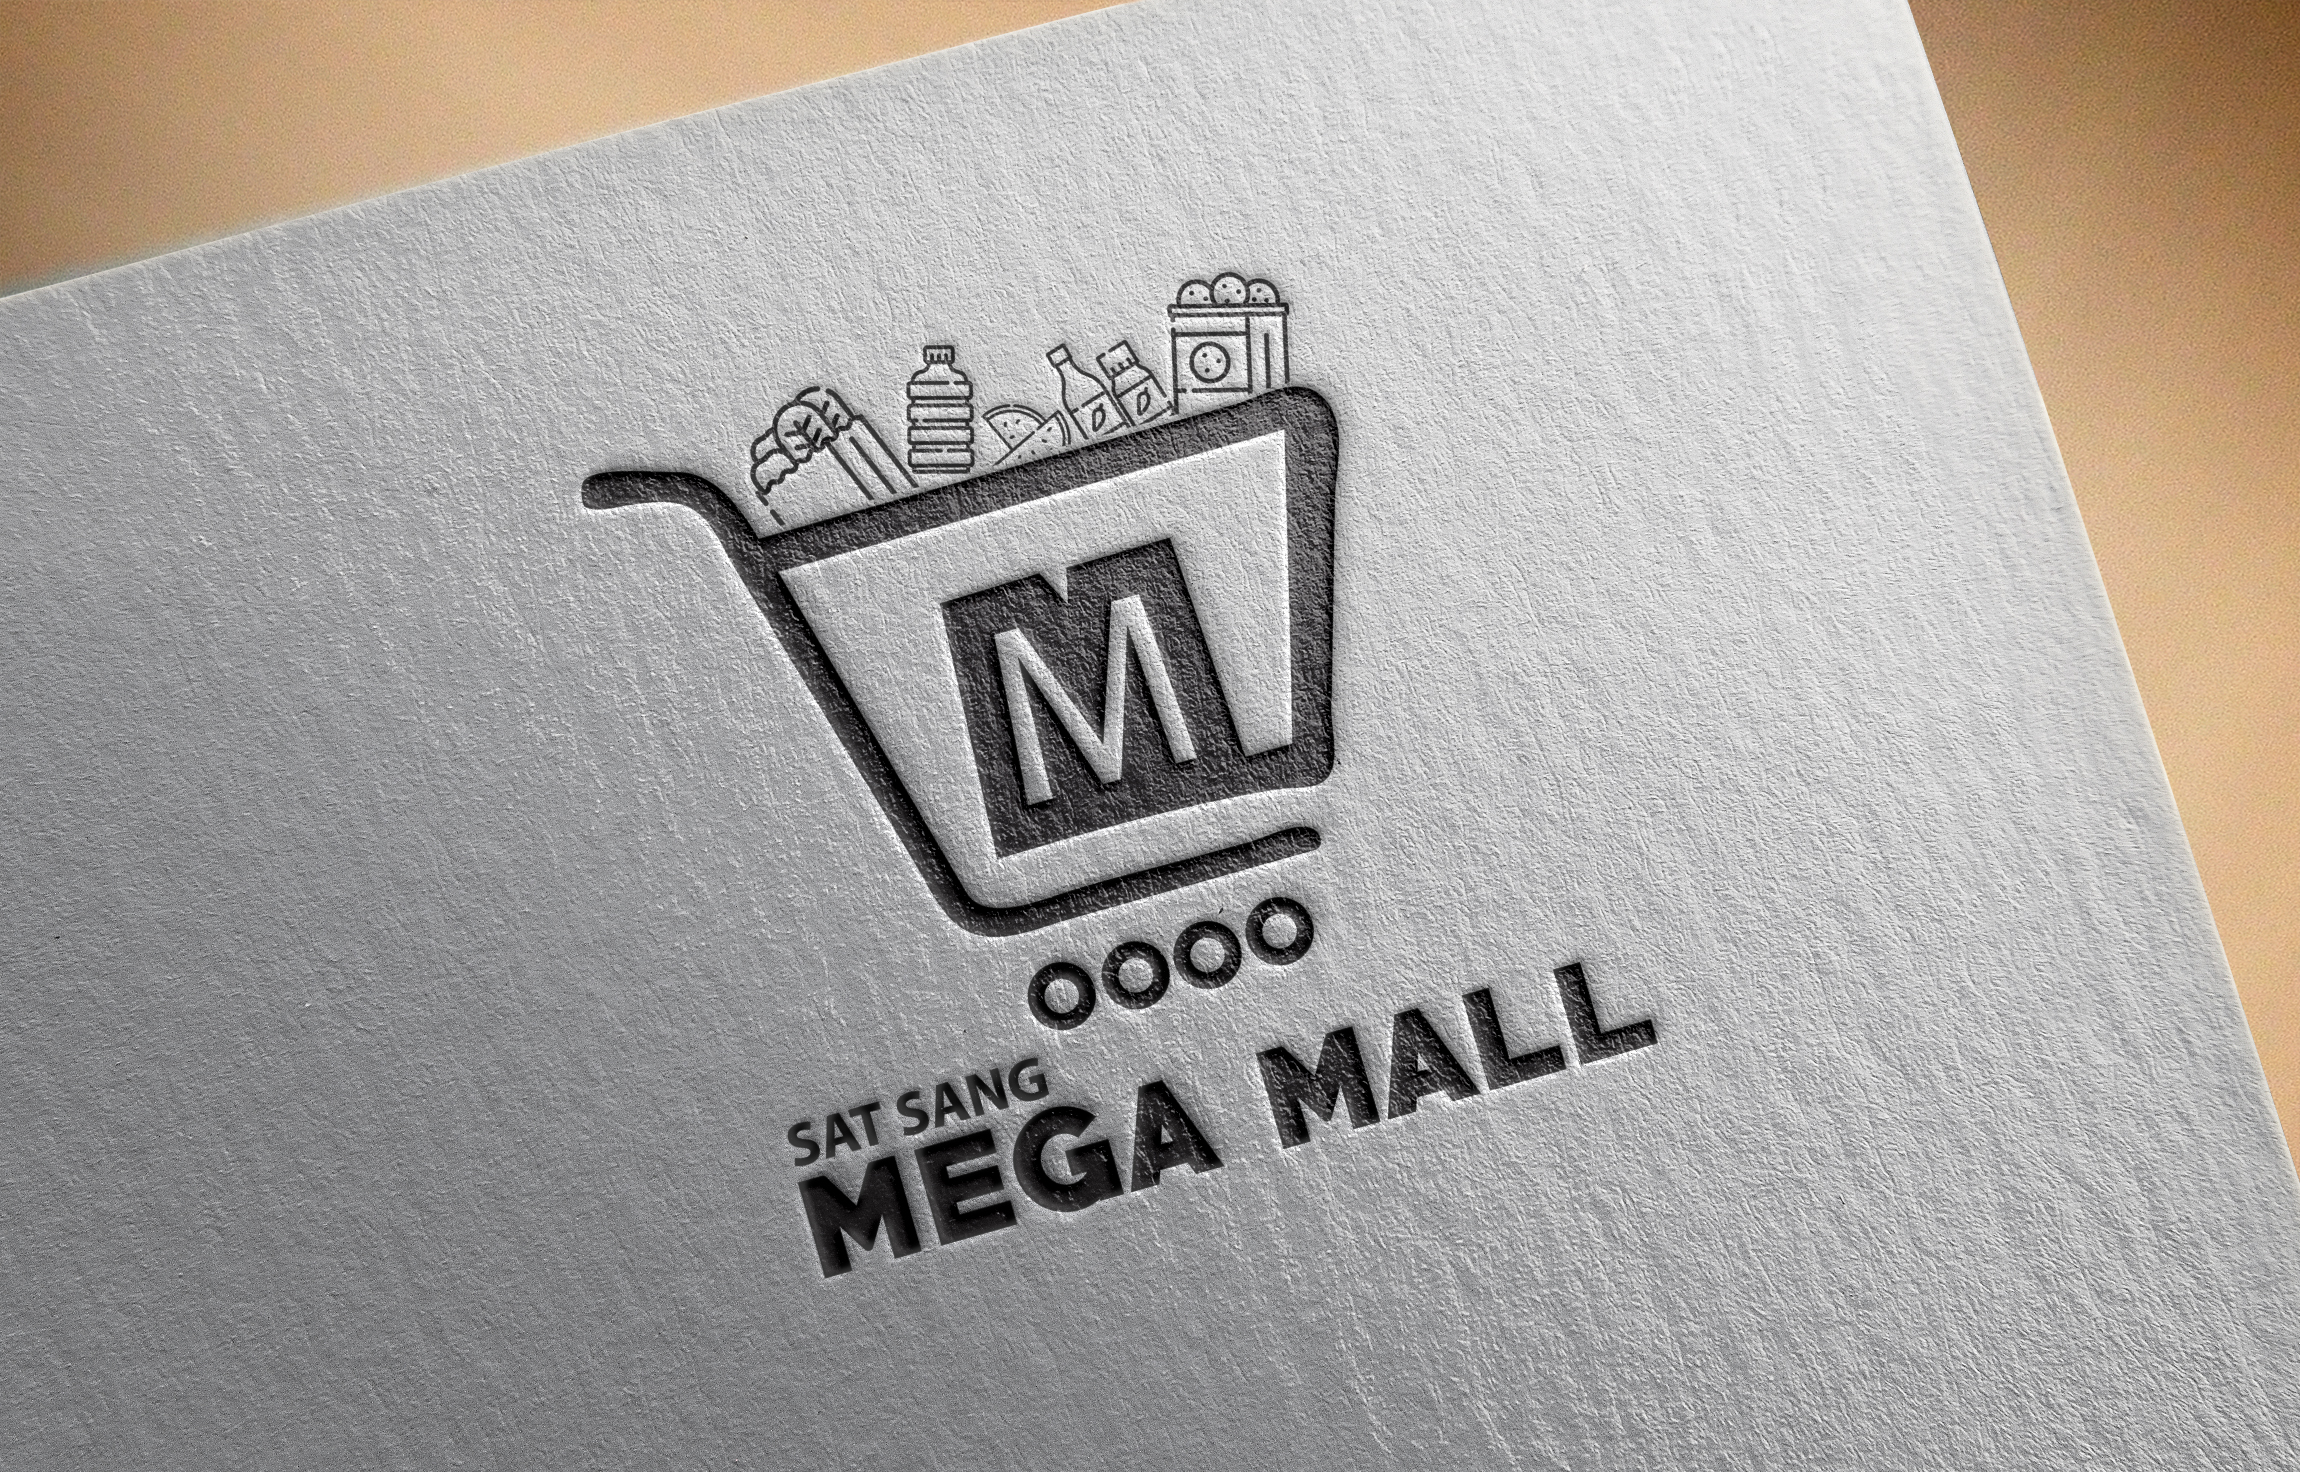 Mega mall logo design by Badri Design